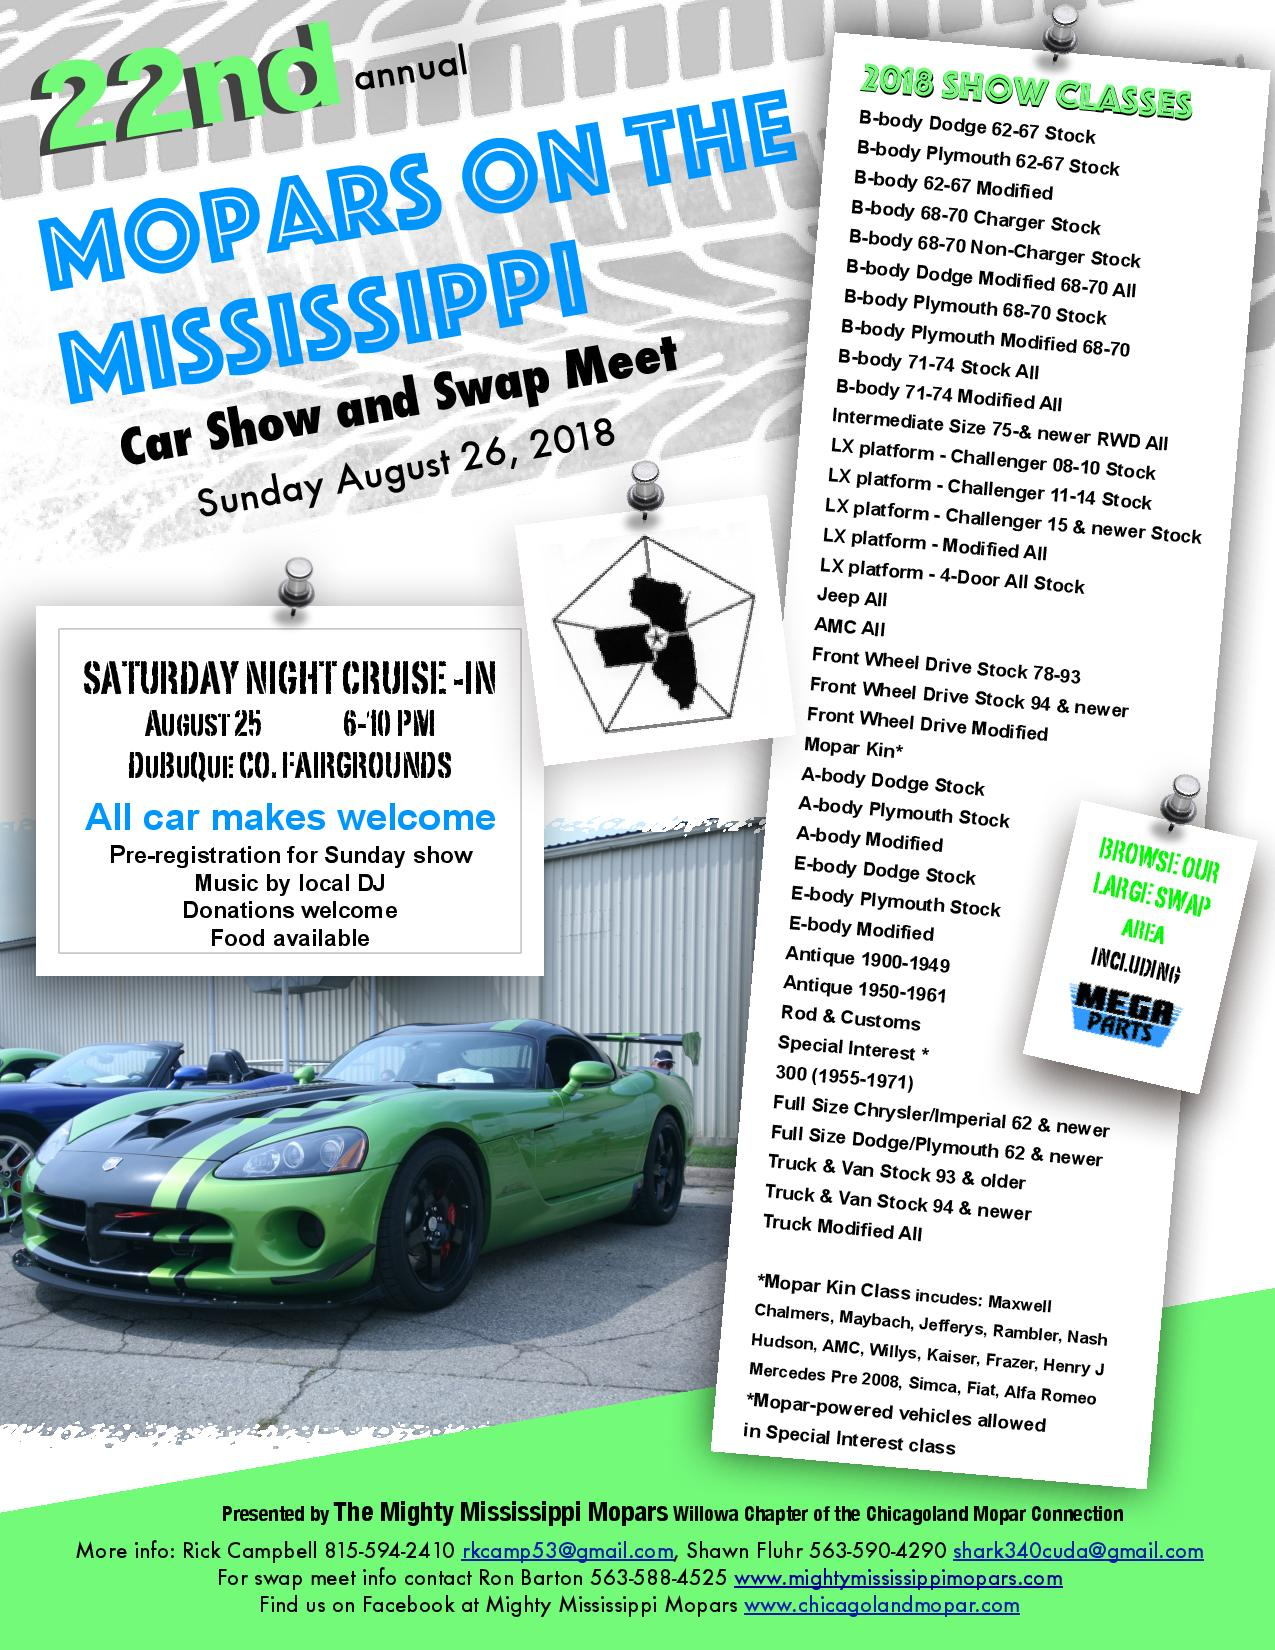 2018 Mopars on the Mississippi | Chicagoland MOPAR Club